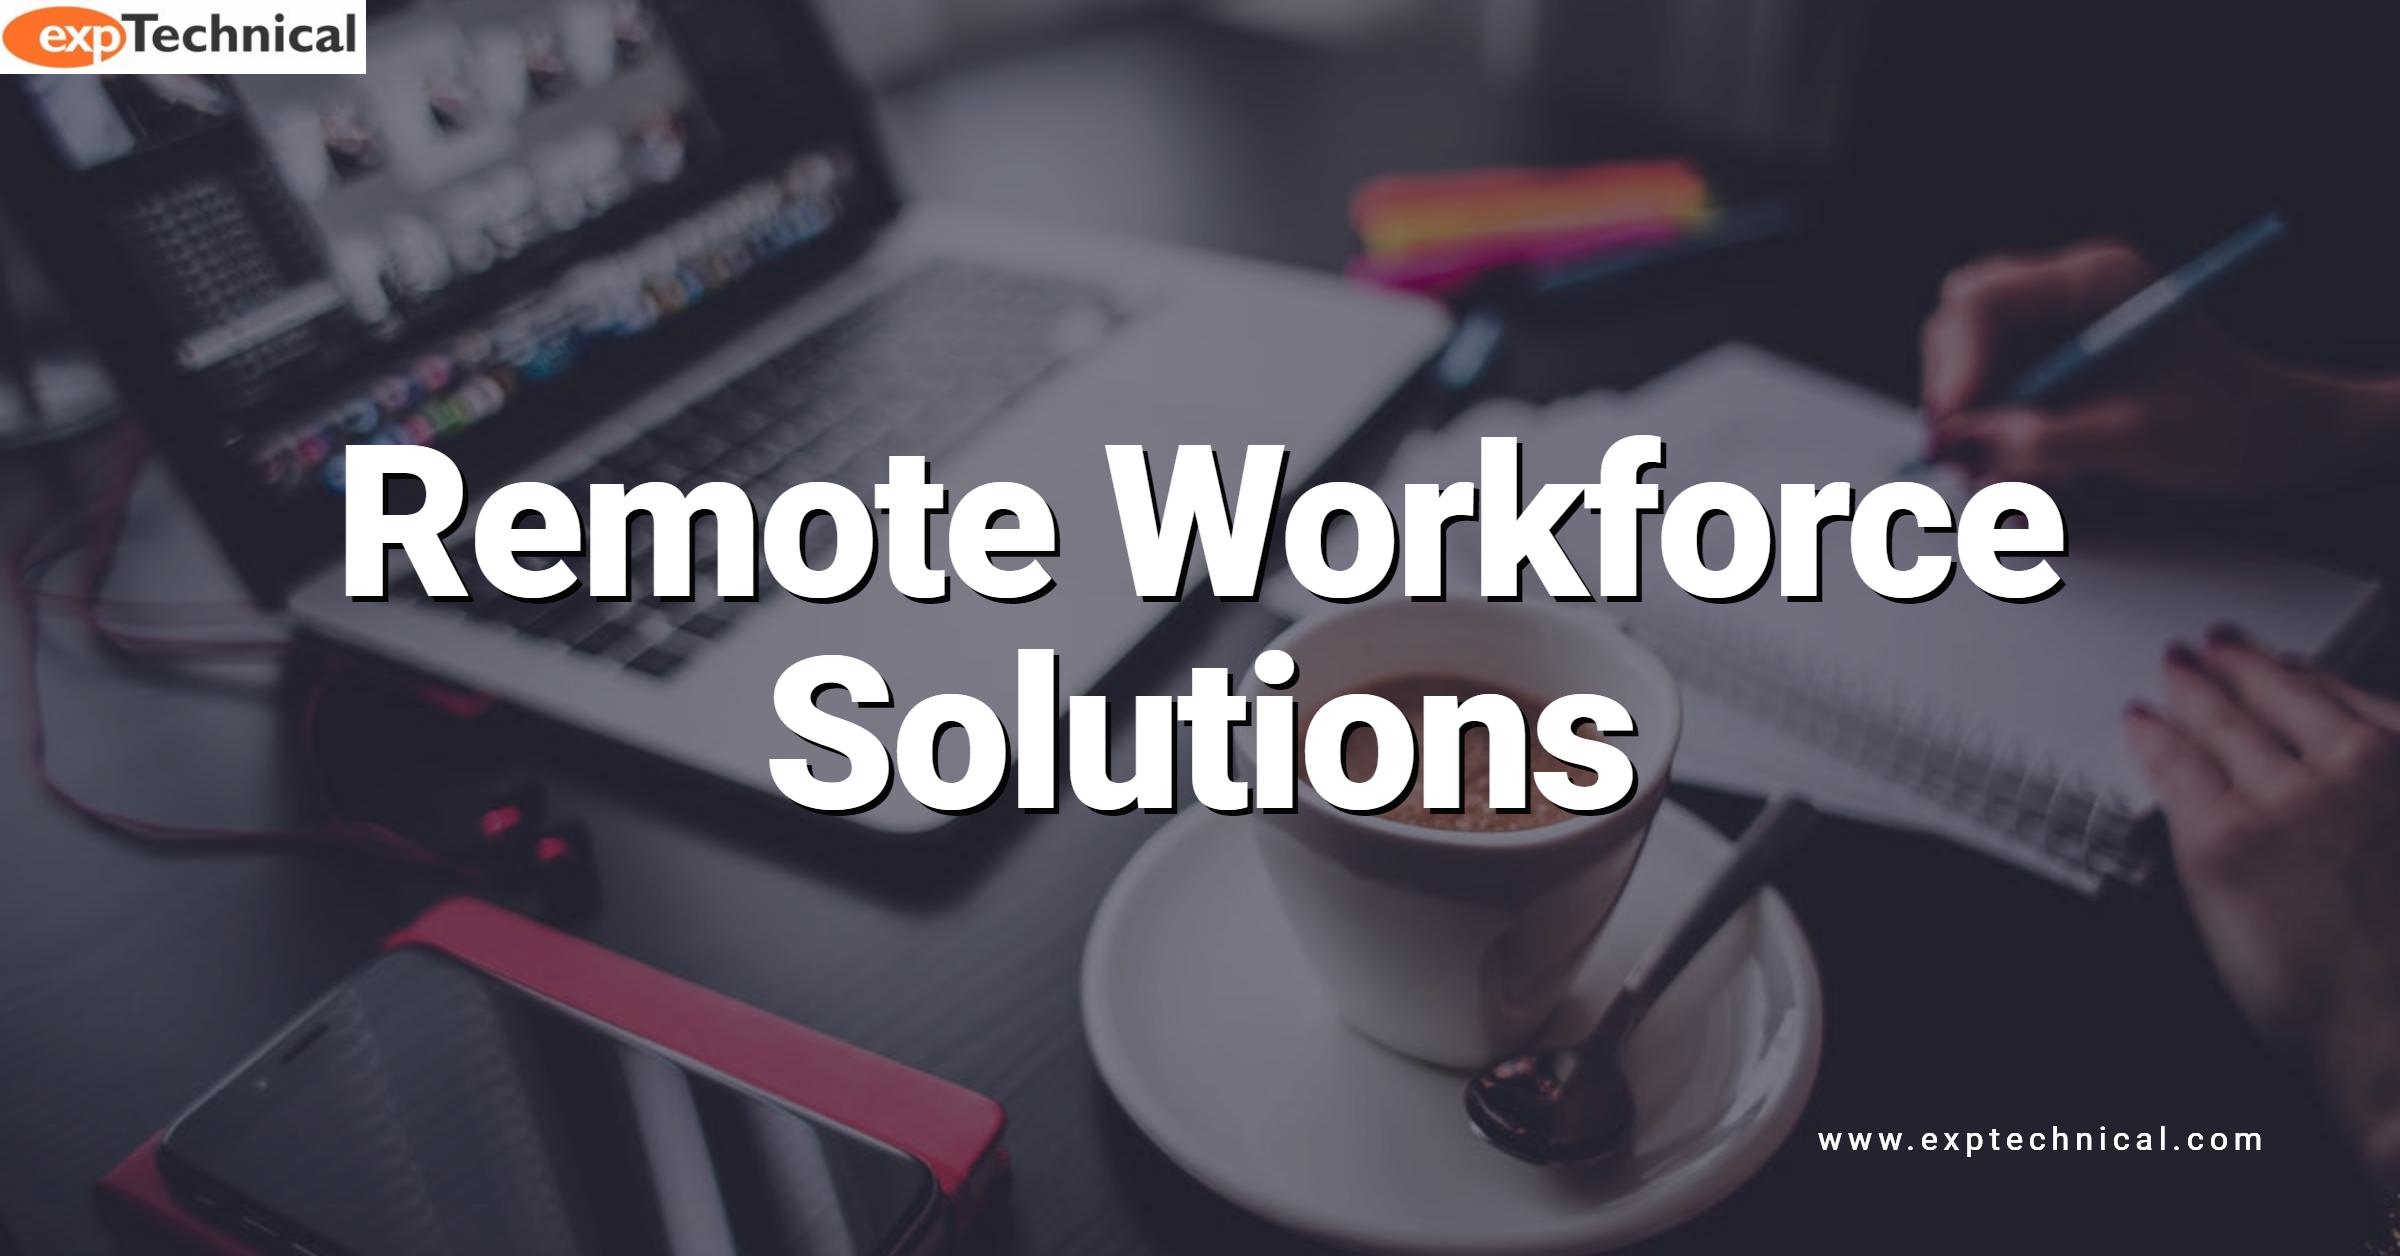 Remote Workforce Solutions - Person working from home in front of computer